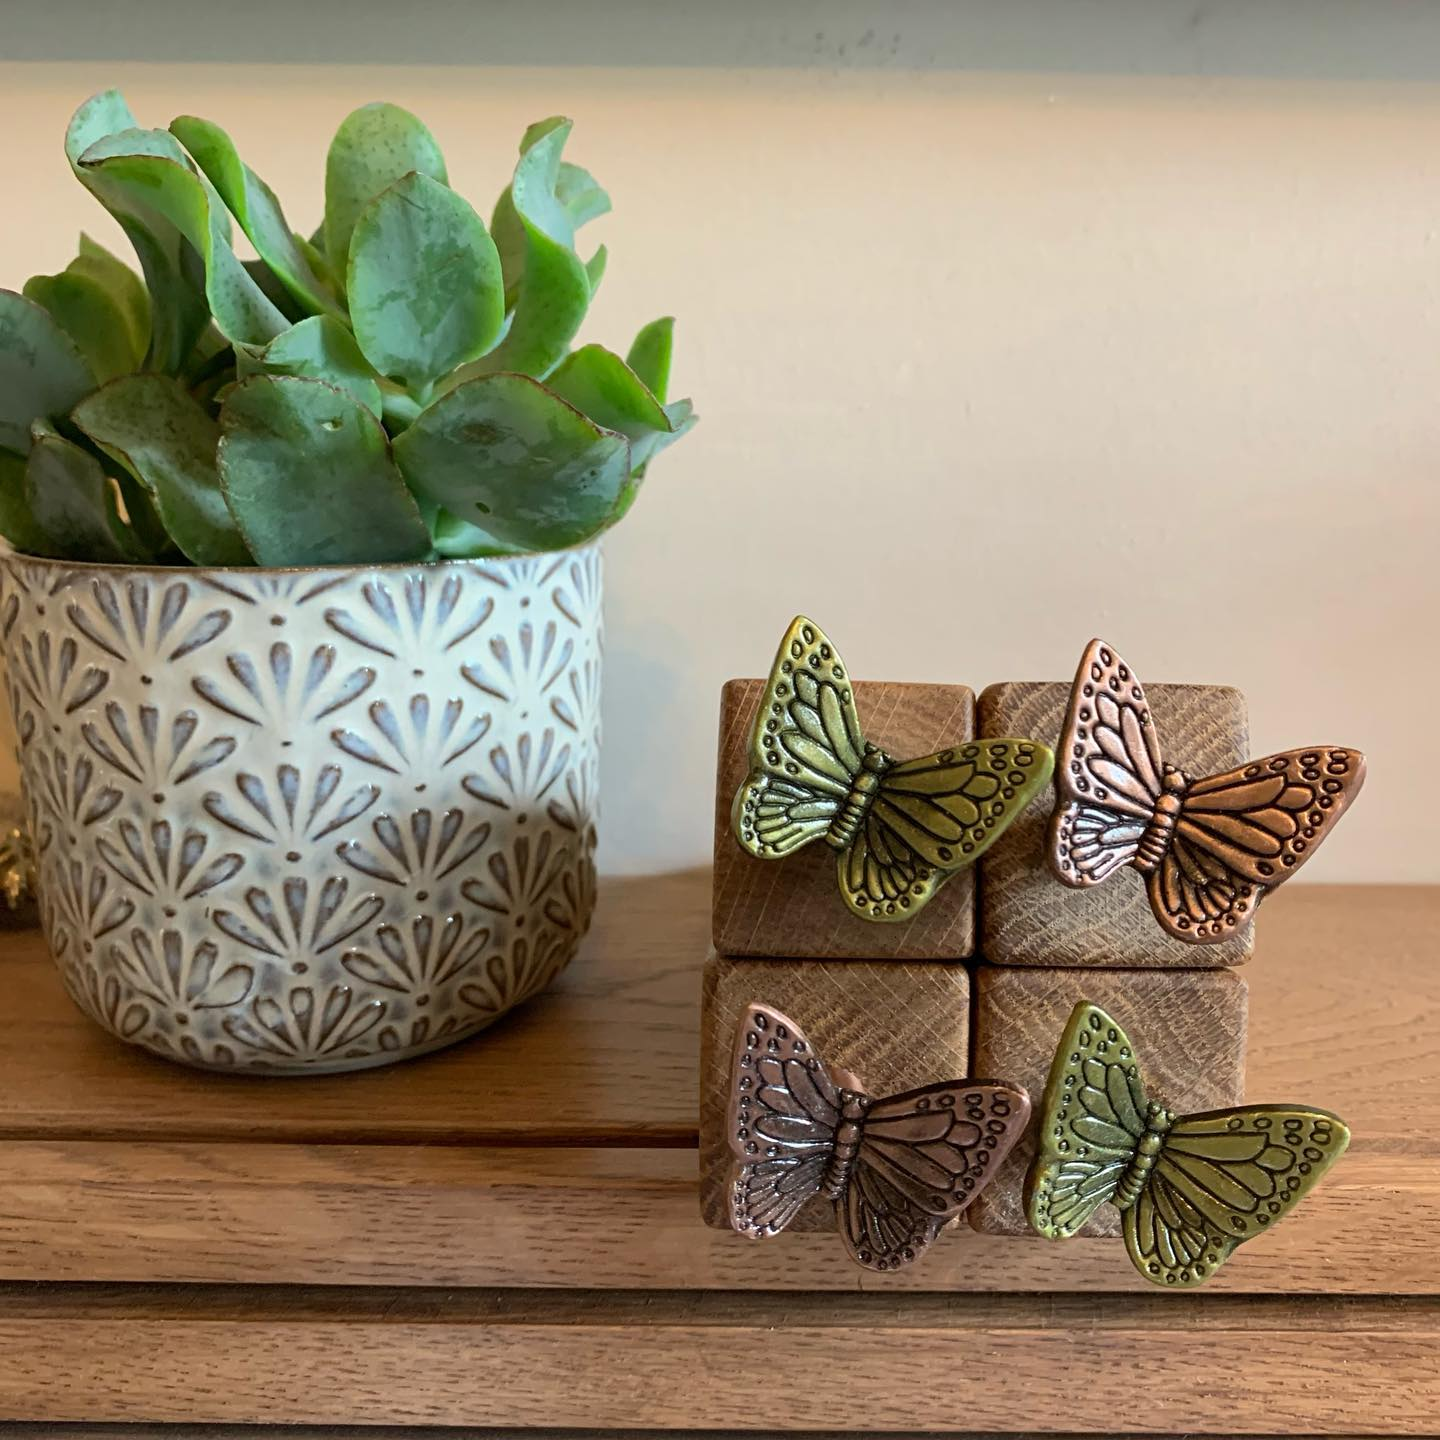 Butterfly oak wedges now available as part of the @clevedonsundaymarket £12 each including UK Shipping. Available in brass or copper finish. Head over to the Virtual Clevedon Sunday Market Facebook Group and join to find these and more, or feel free to get in contact if you'd like one, only a few available.